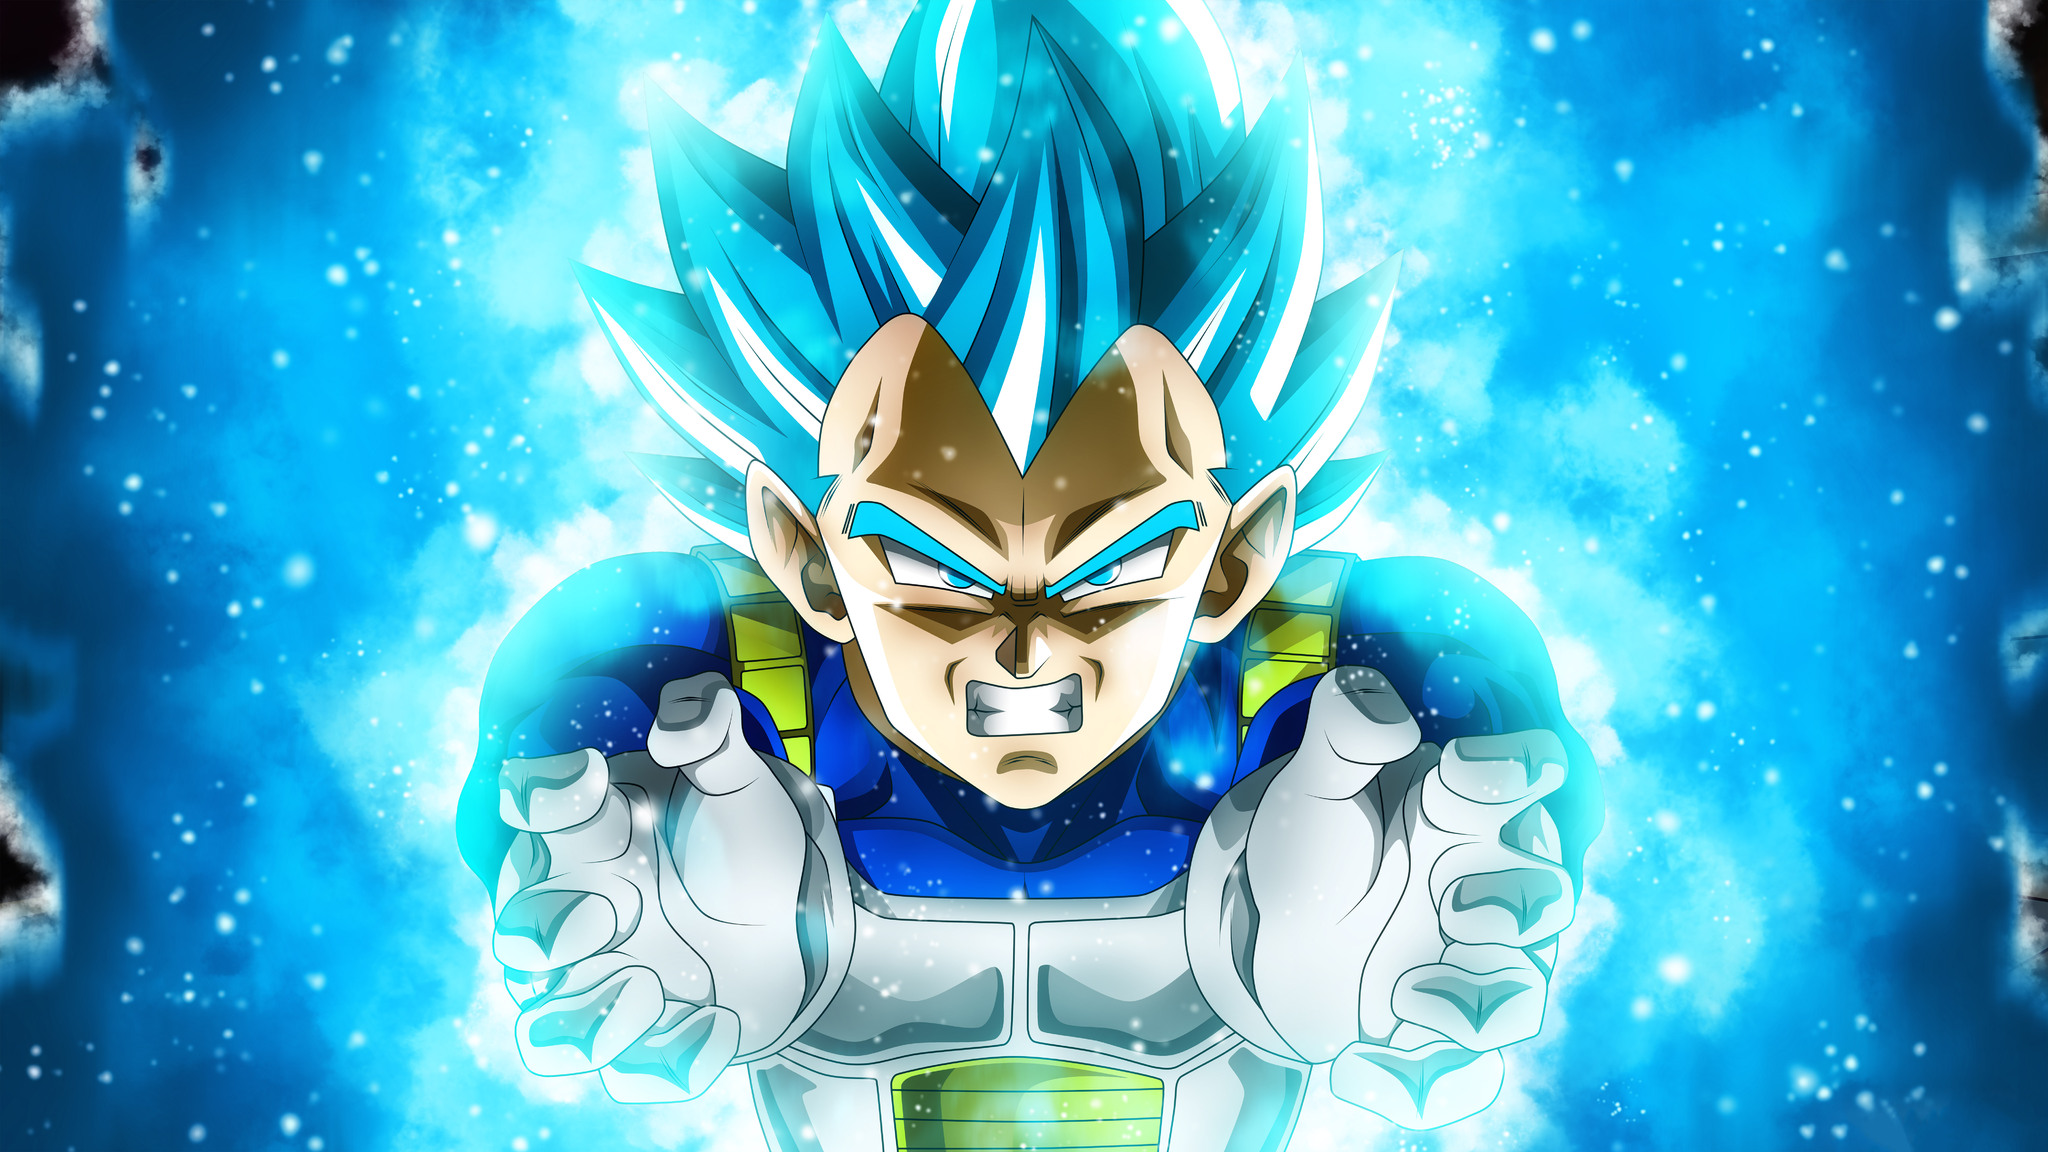 vegeta final flash live wallpaper free